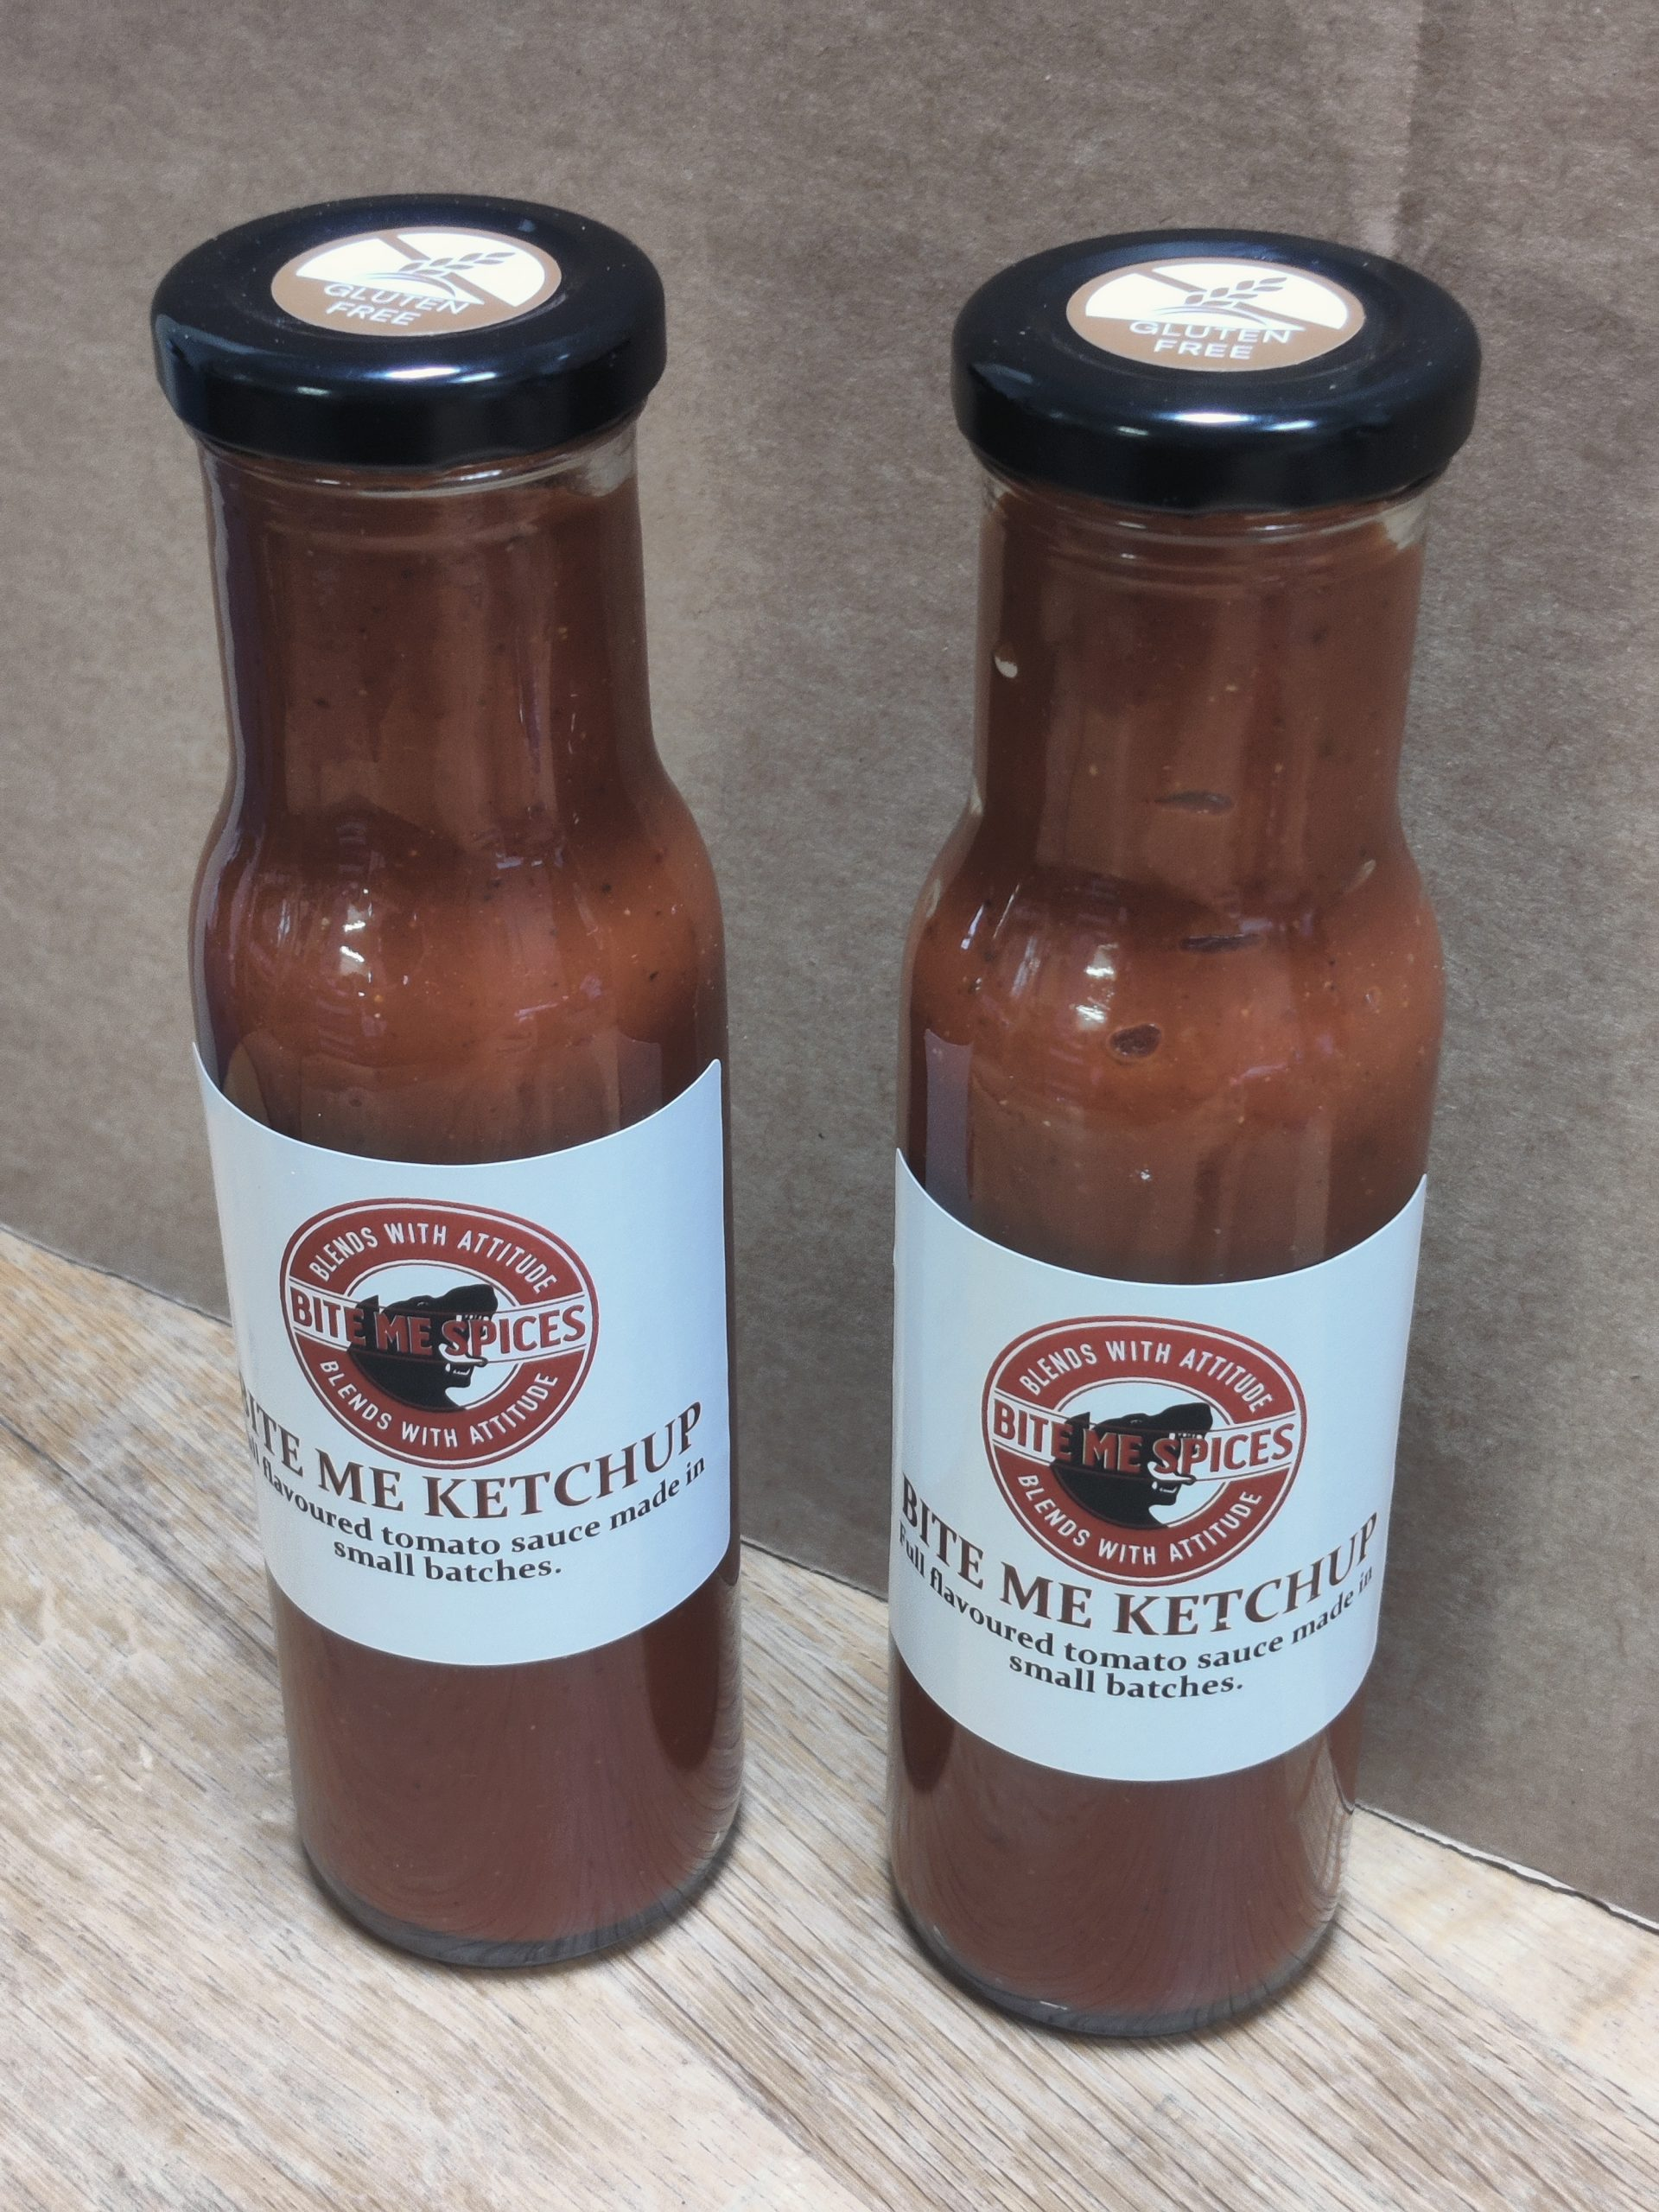 Twinpack Bite Me Ketchup, gluten free, made in small batches